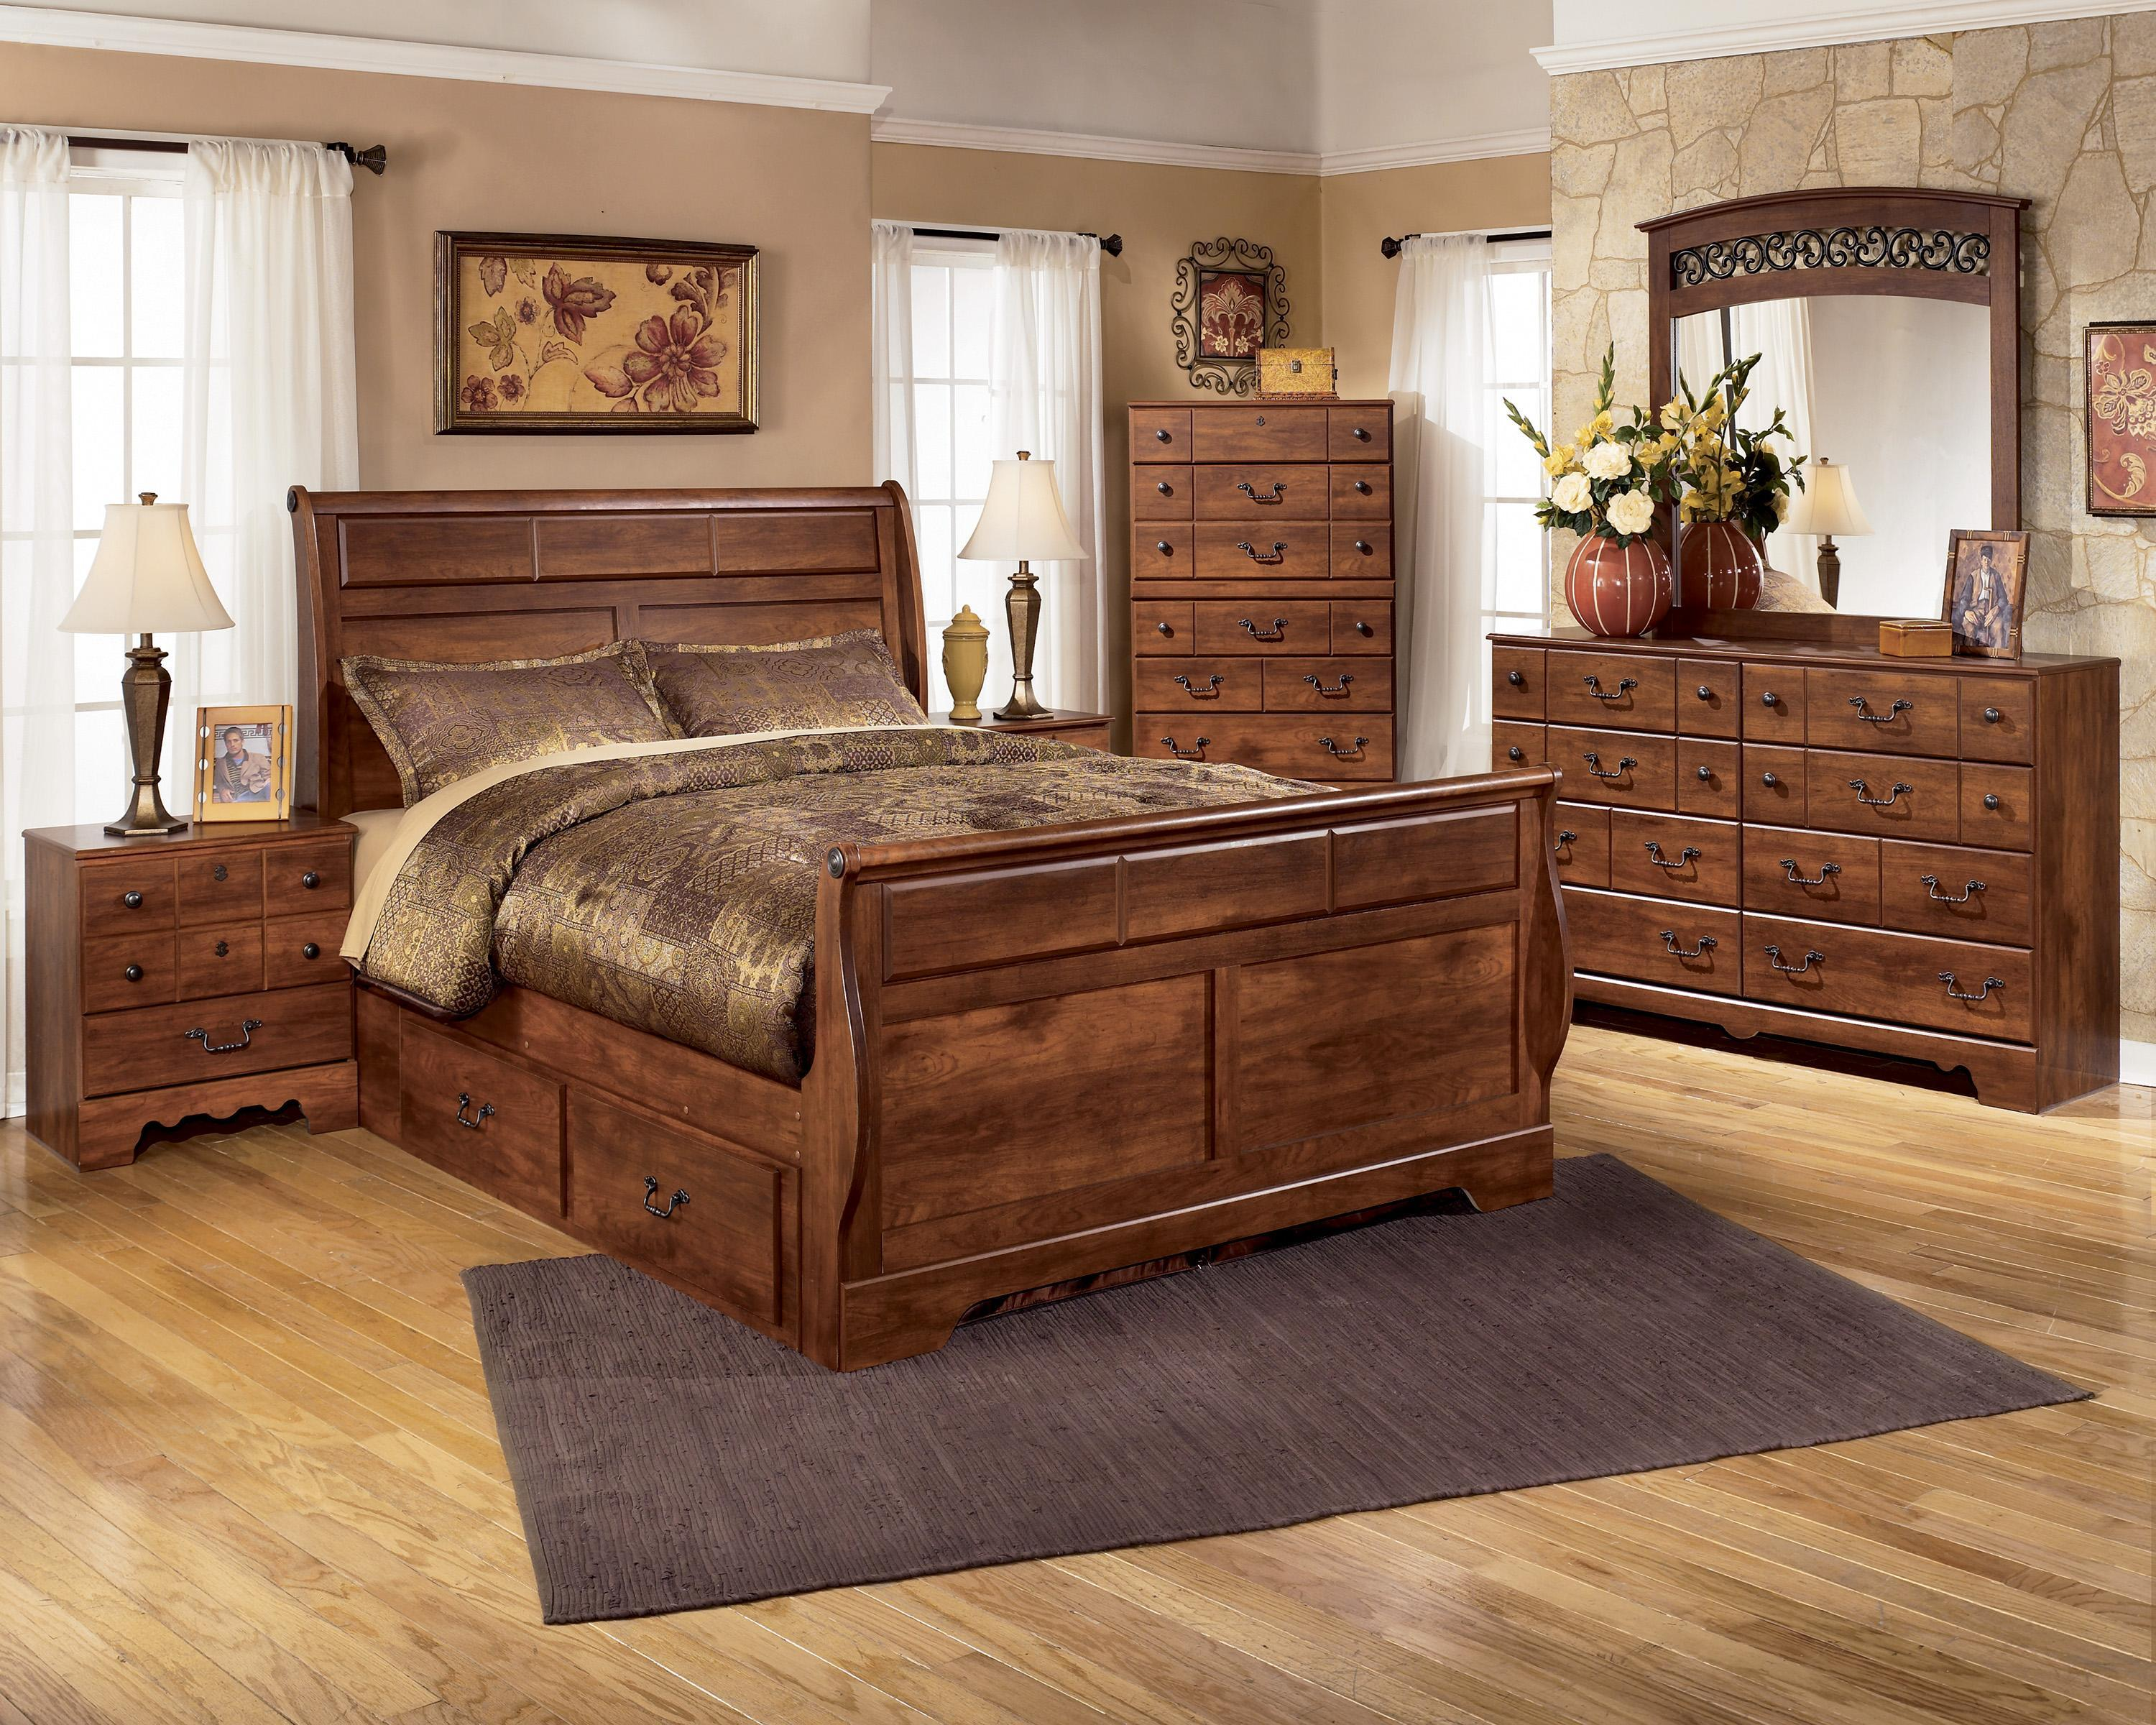 Signature Design by Ashley Timberline 4 Piece Bedroom Group - Item Number: B258 Q w St 4 Piece